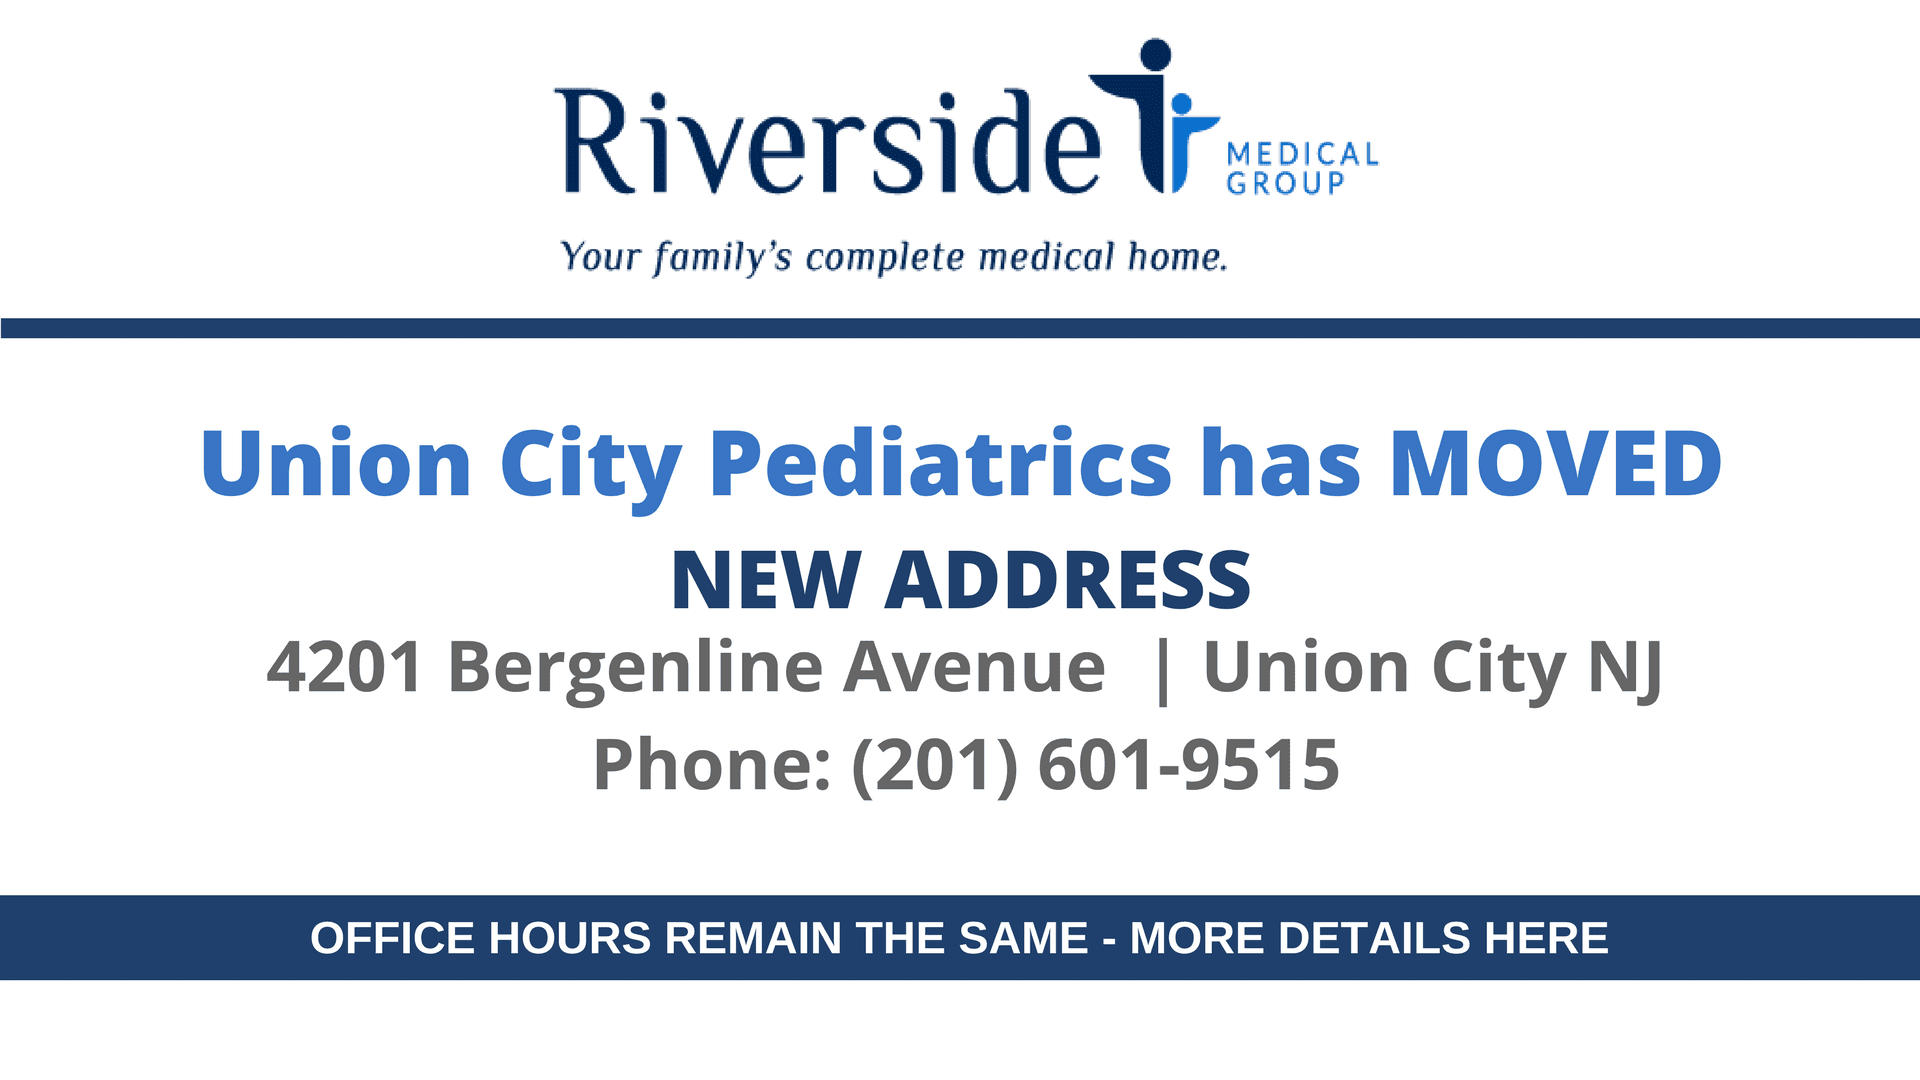 Union City Pediatrics Has Moved